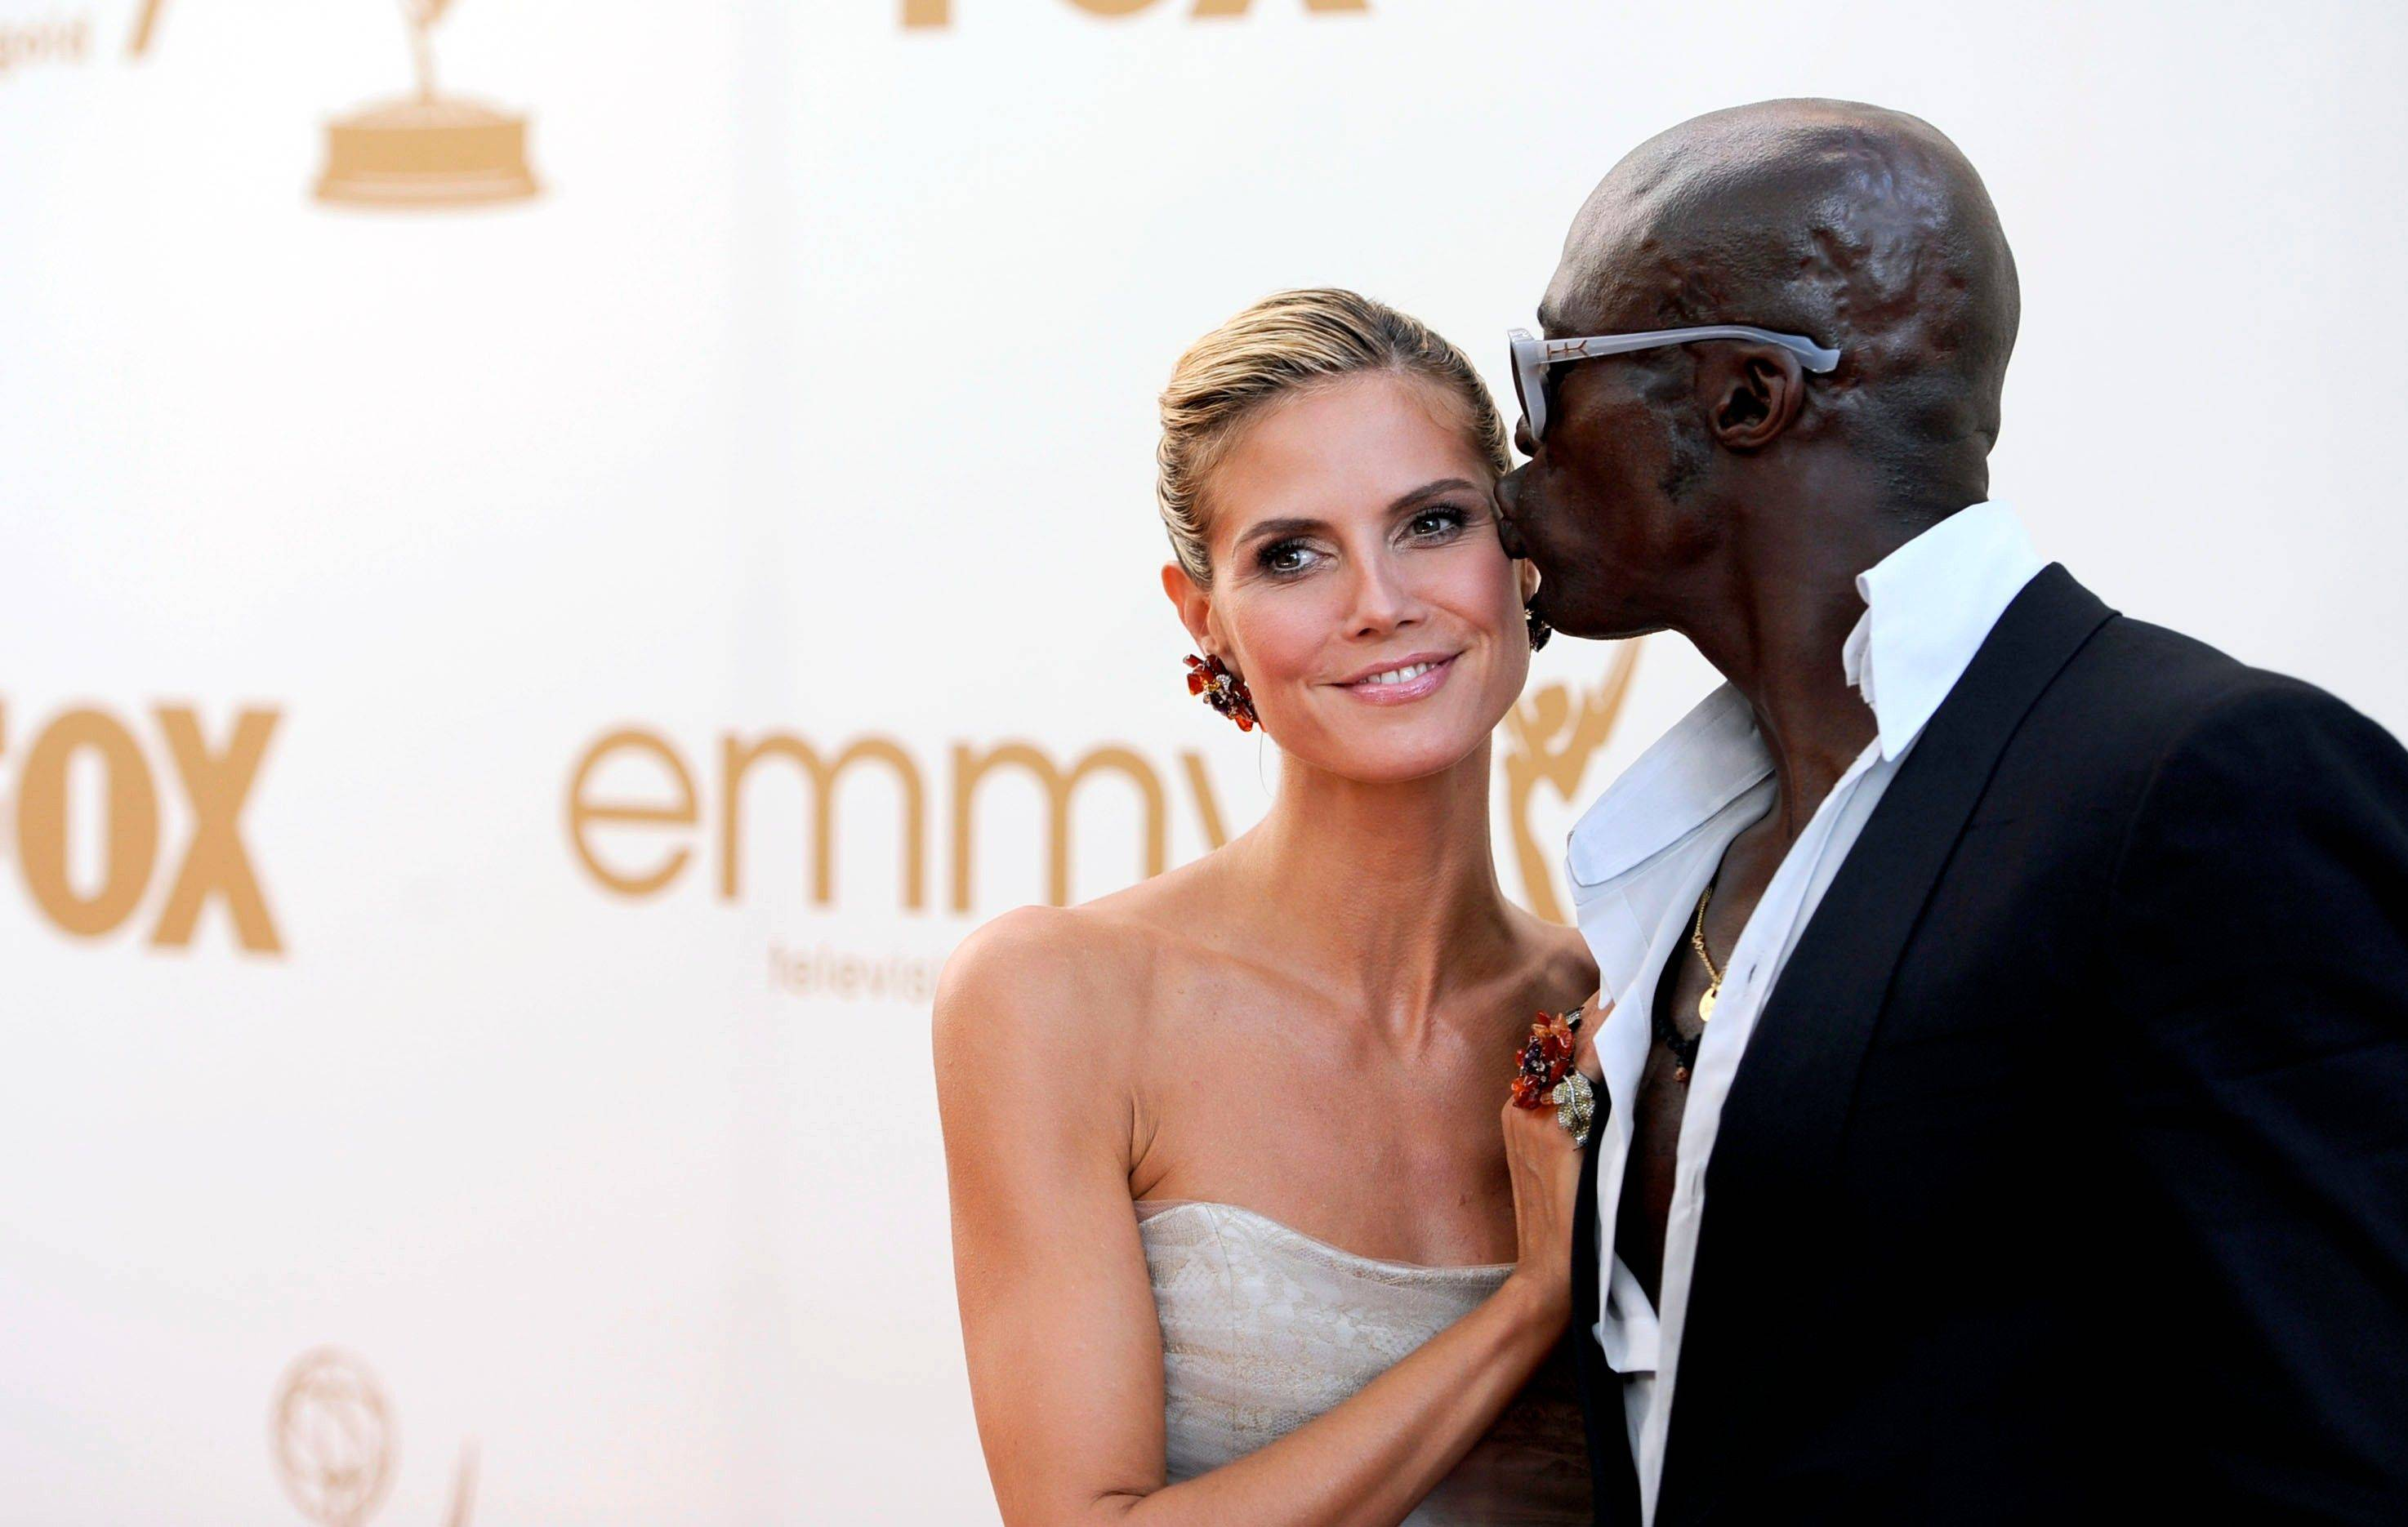 Heidi Klum and Seal get a little playful on the red carpet.